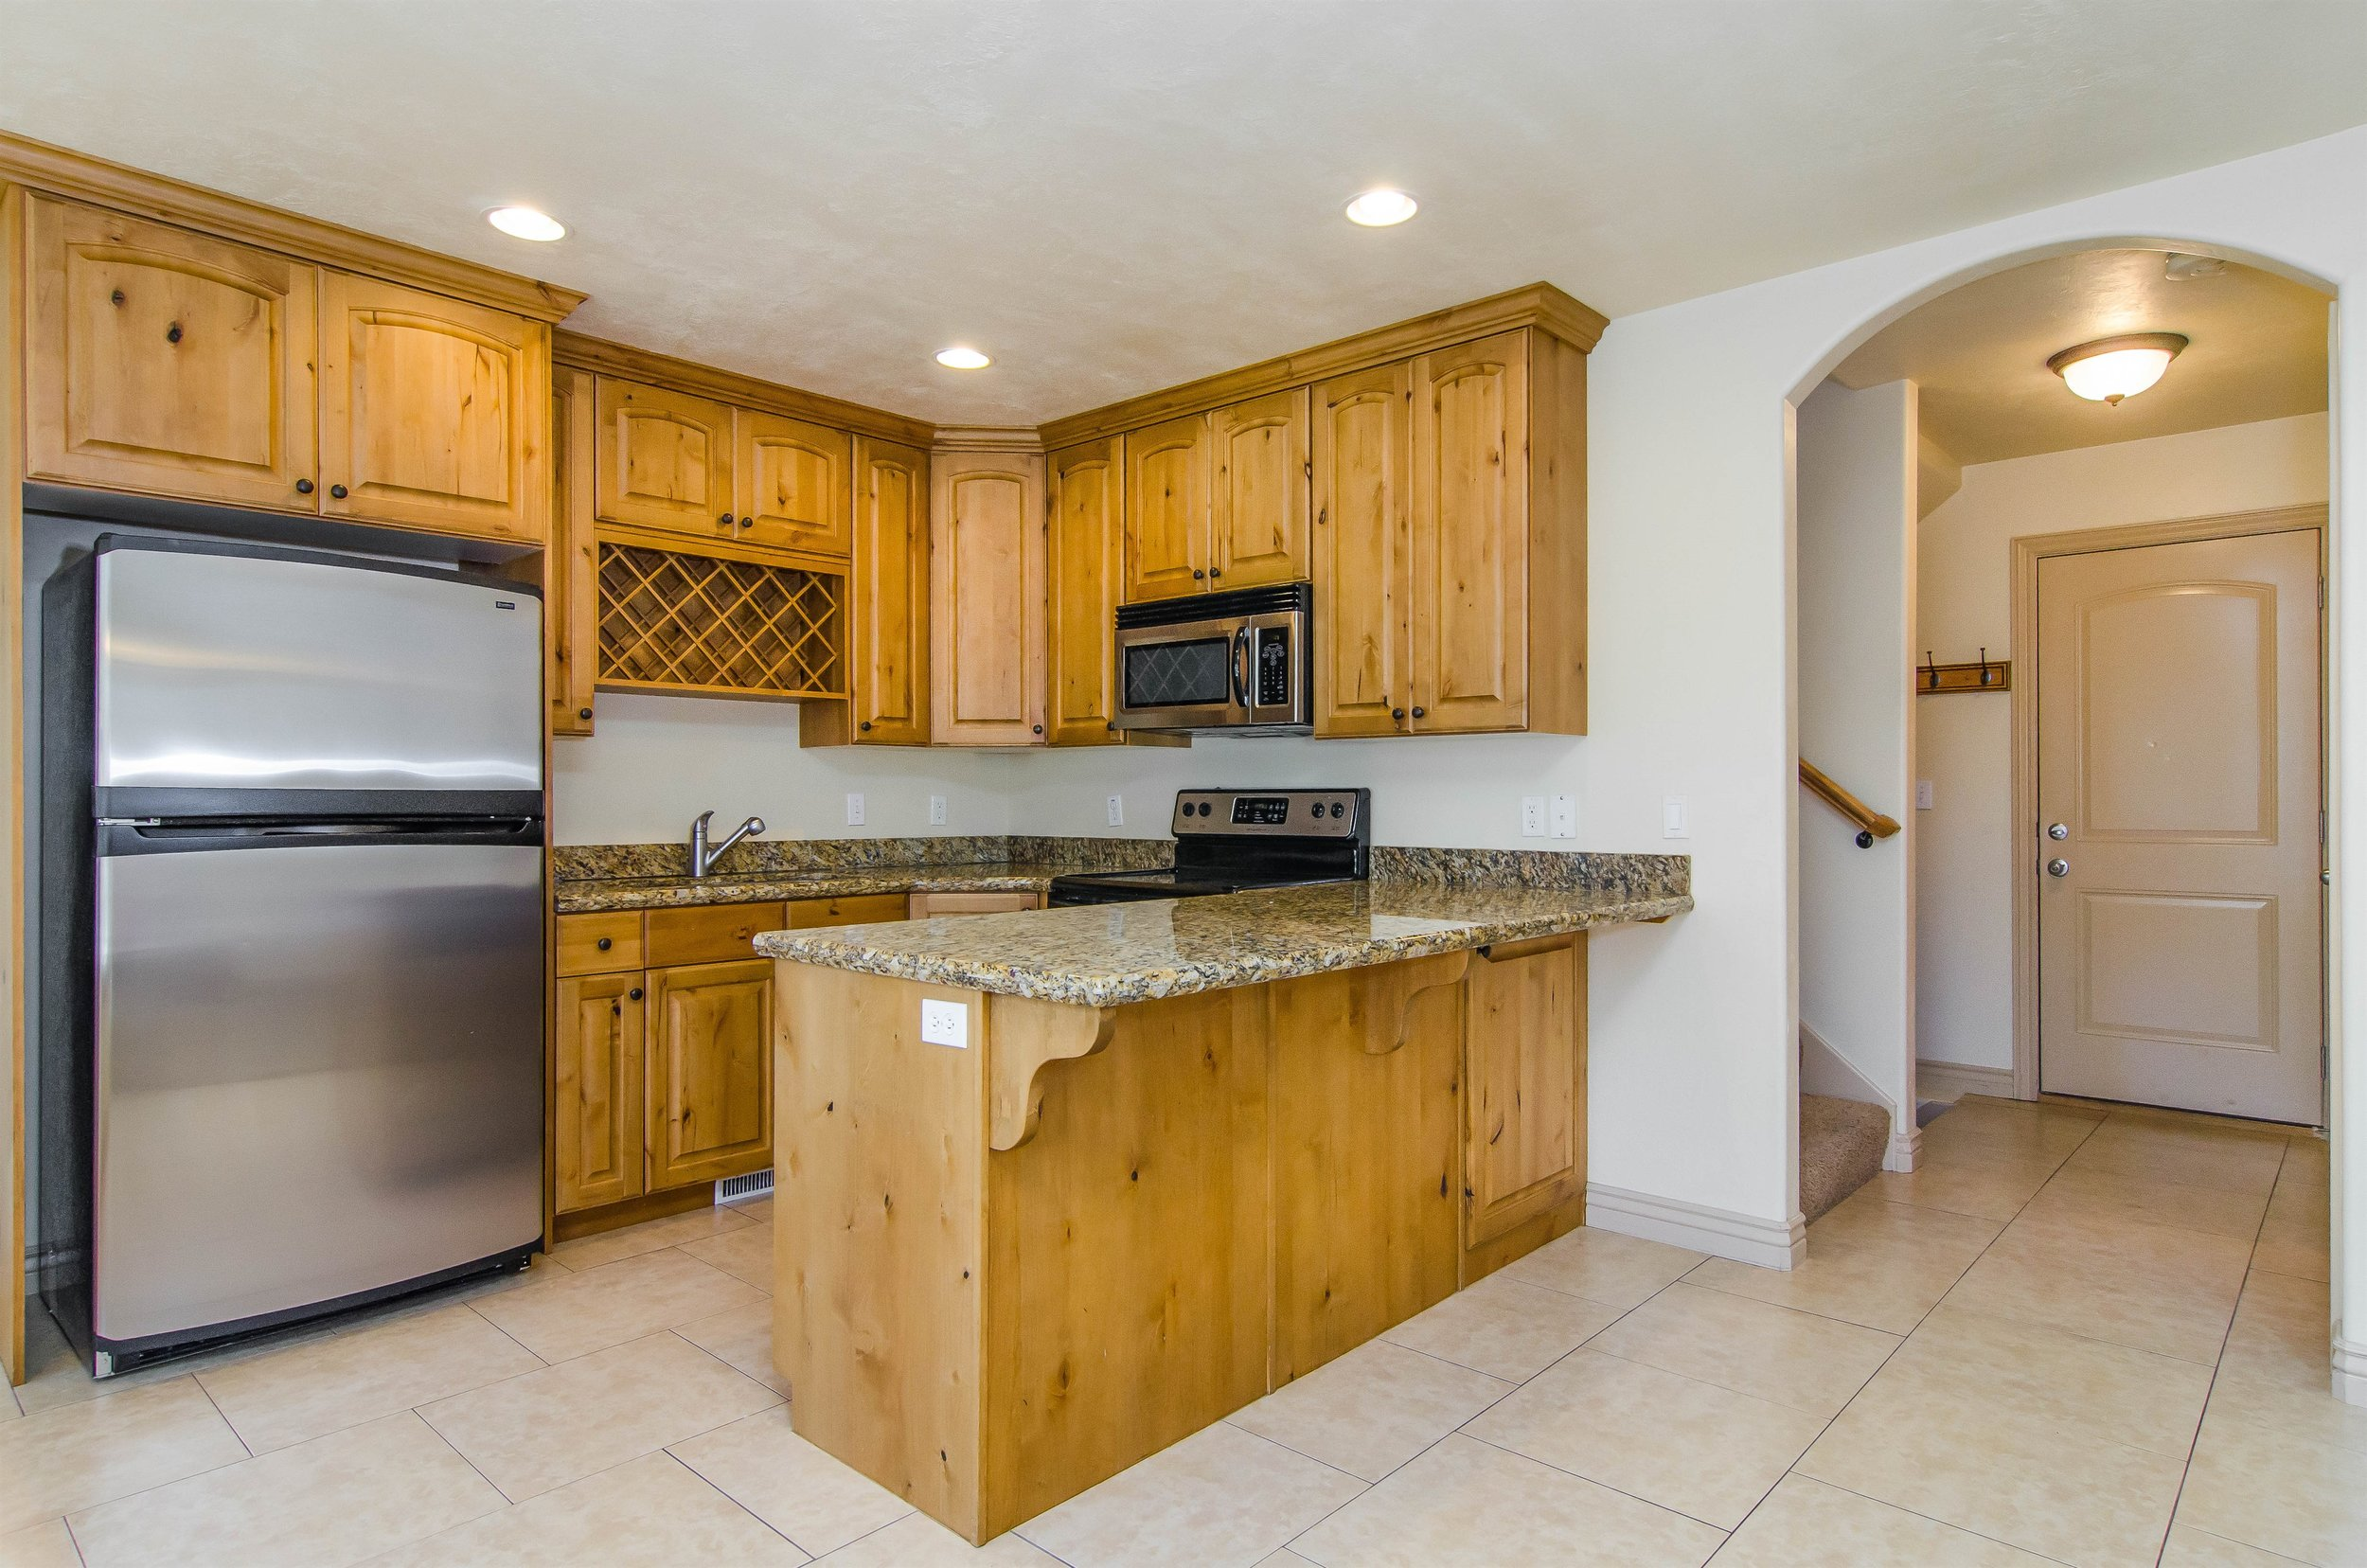 008_Kitchen .jpg